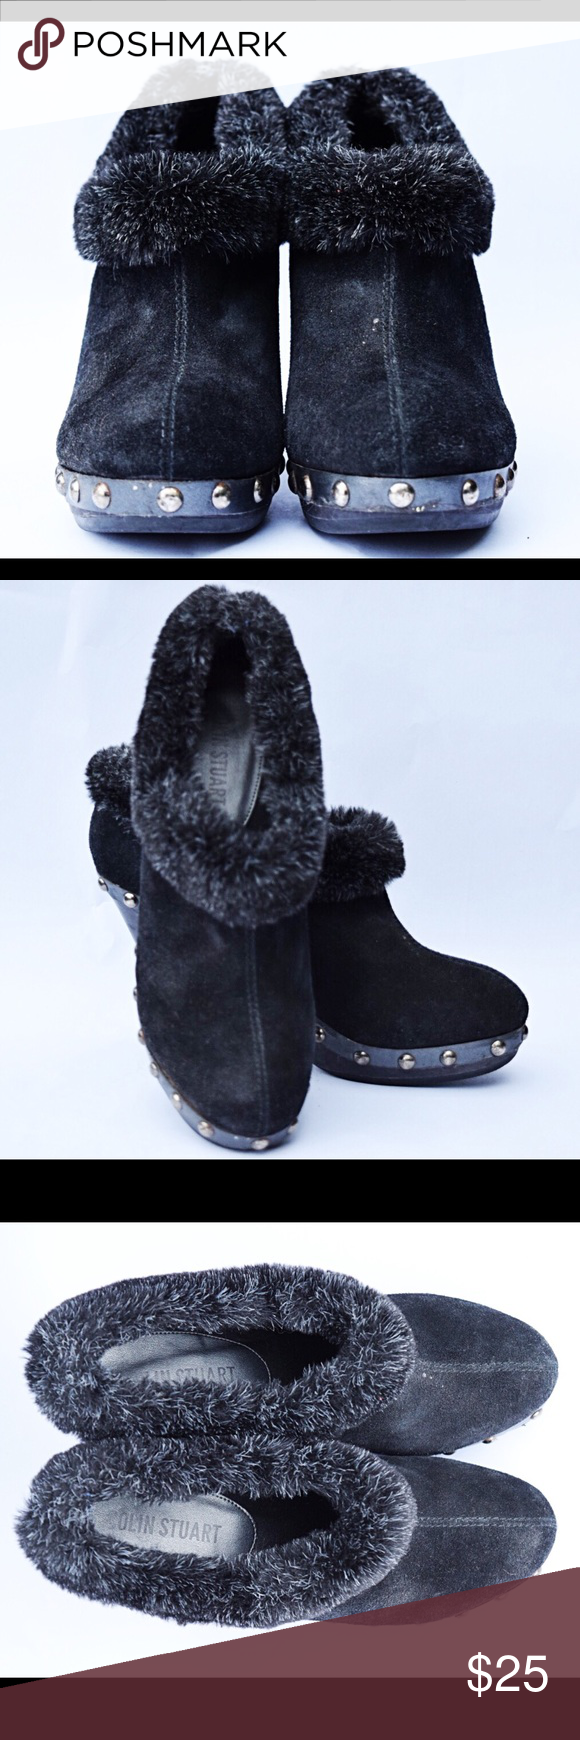 Pair of Black Colin Stuart Booties Very comfortable and warm booties, worn several times so the heels are scuffed. Colin Stuart Shoes Ankle Boots & Booties